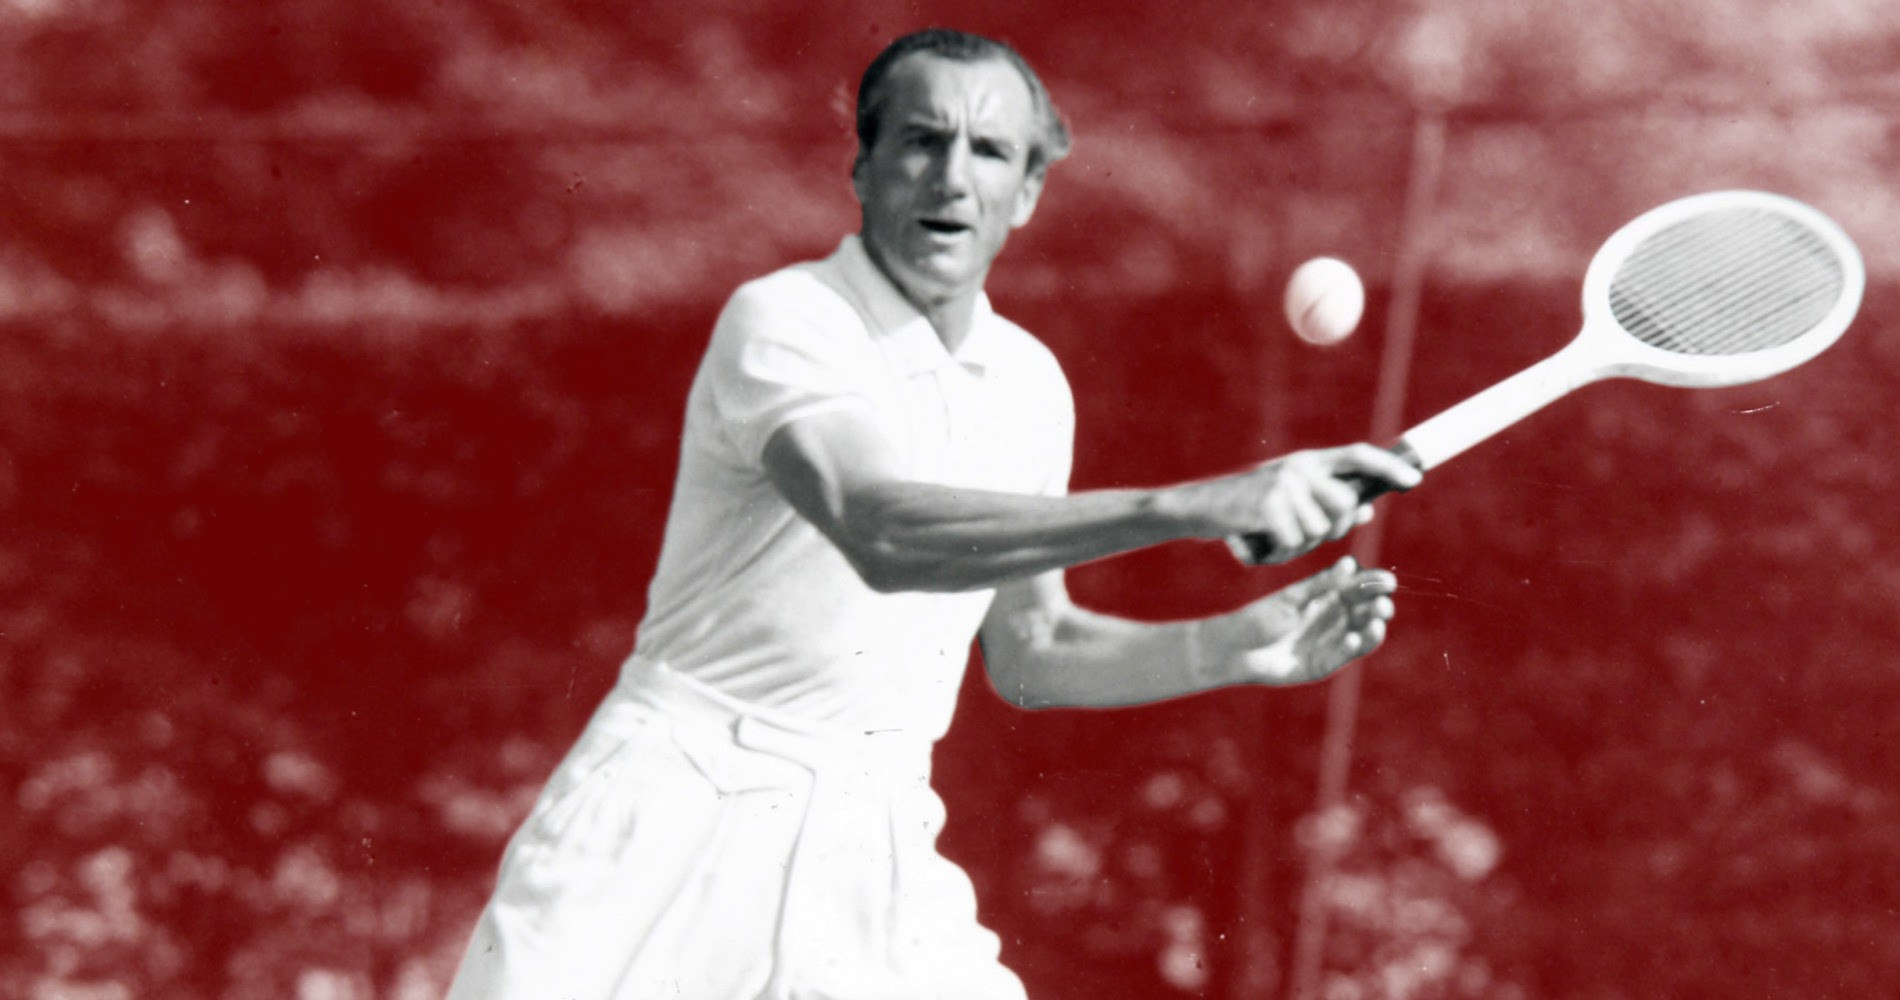 Fred Perry remained for long the last British winner of a Grand Slam